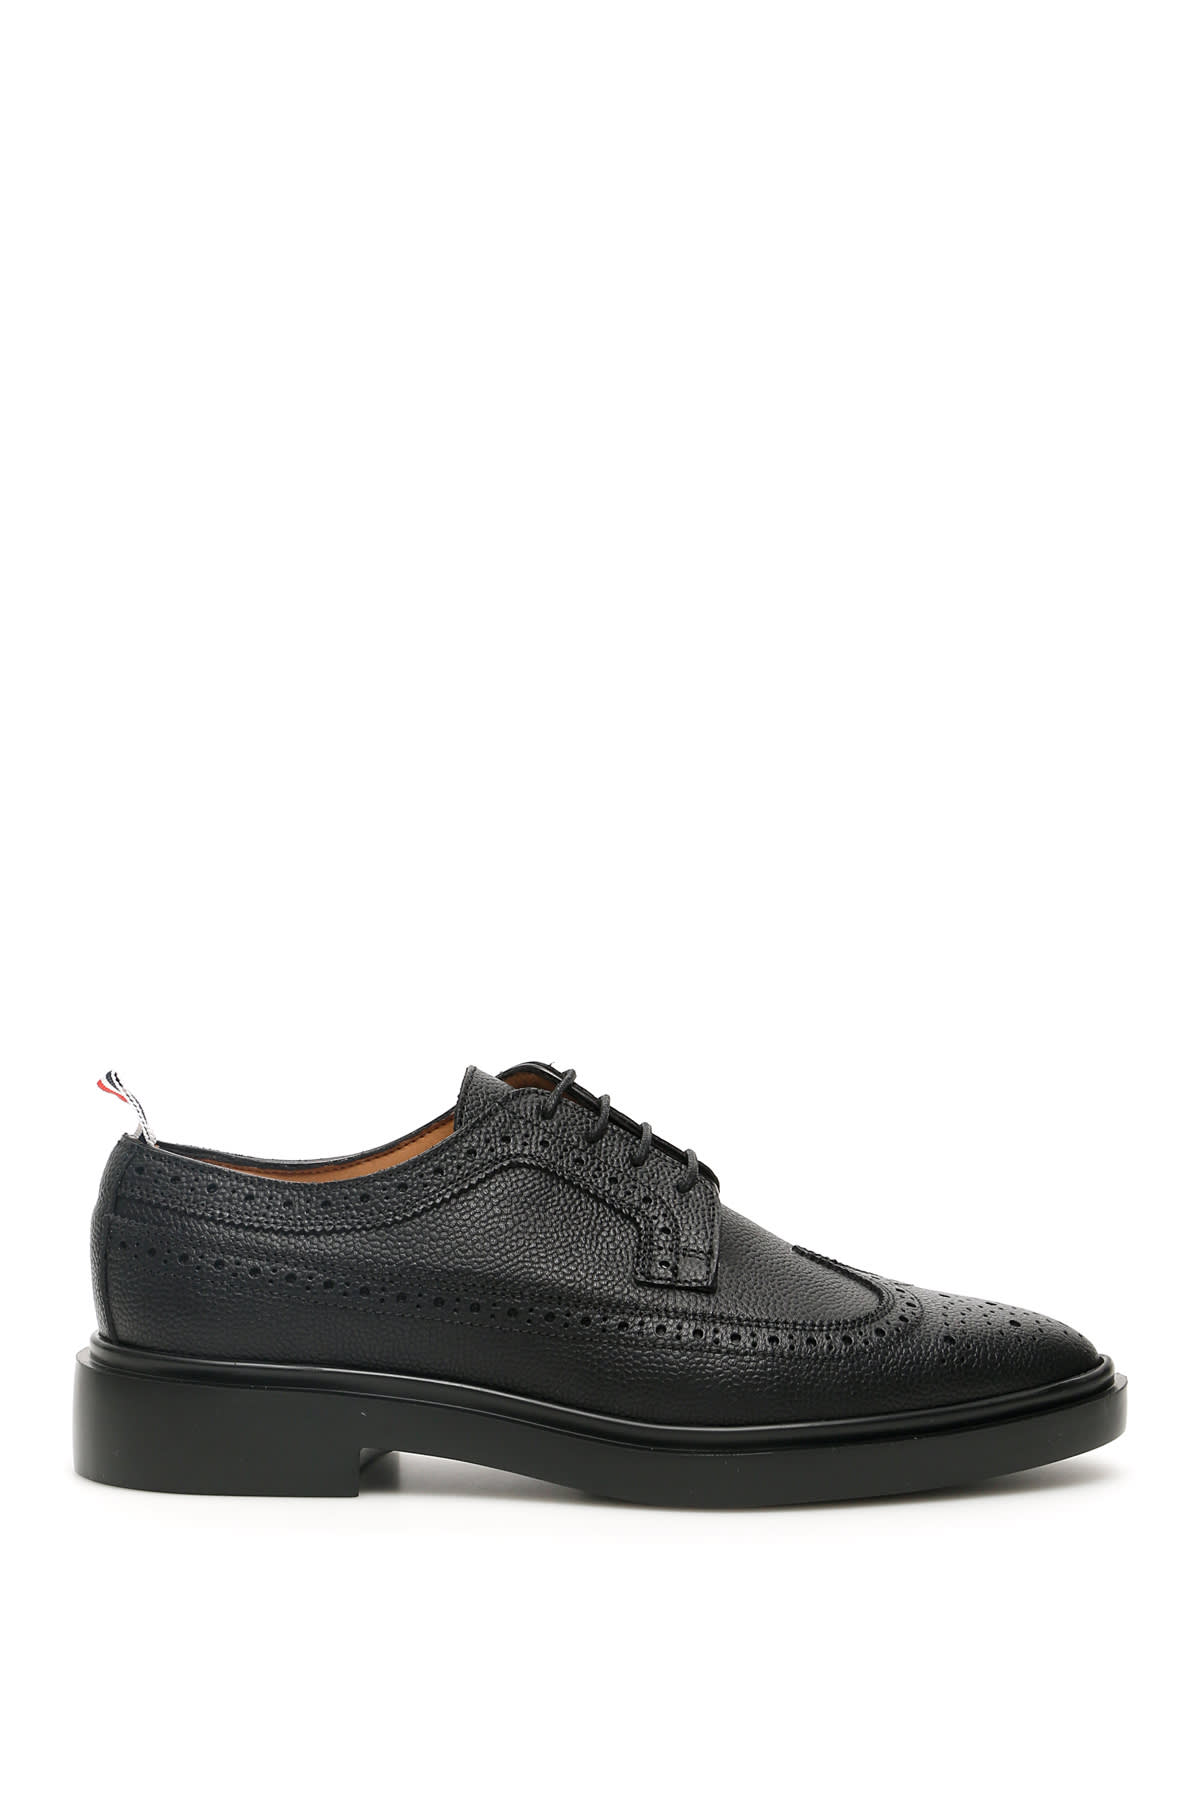 Thom Browne Longwing Brogue Lace-ups